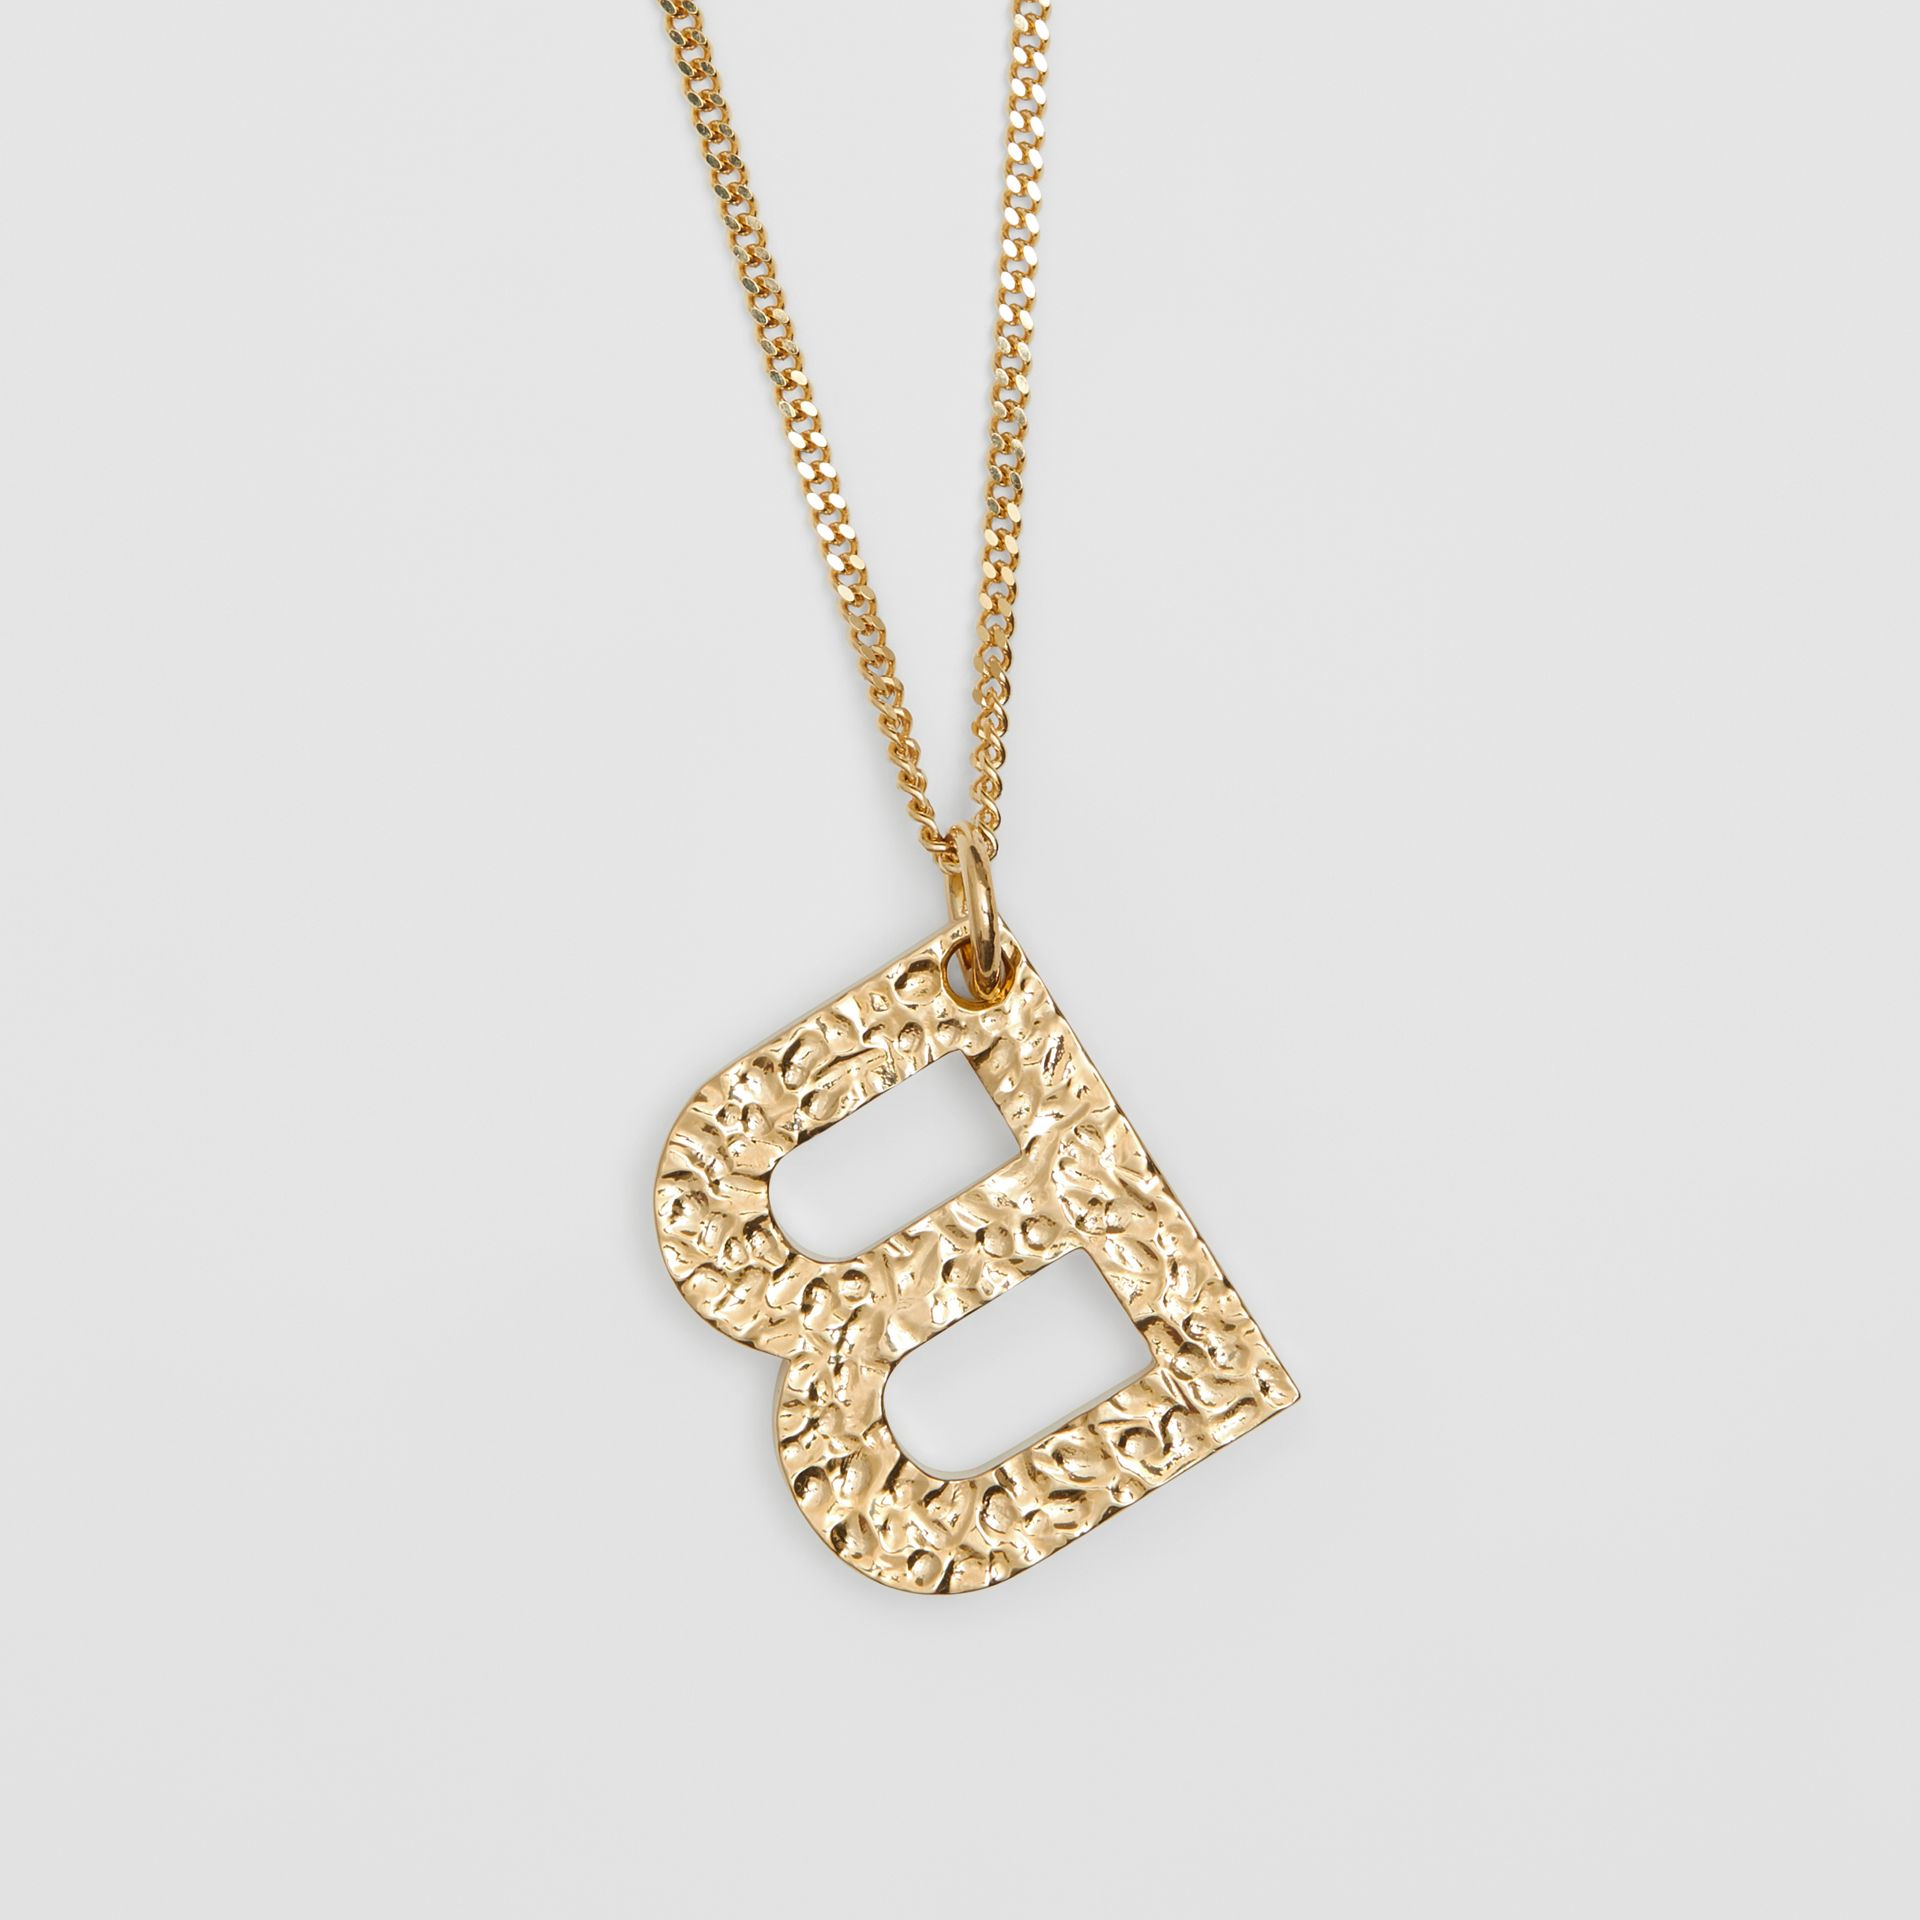 'B' Alphabet Charm Gold-plated Necklace in Light - Women | Burberry - gallery image 2